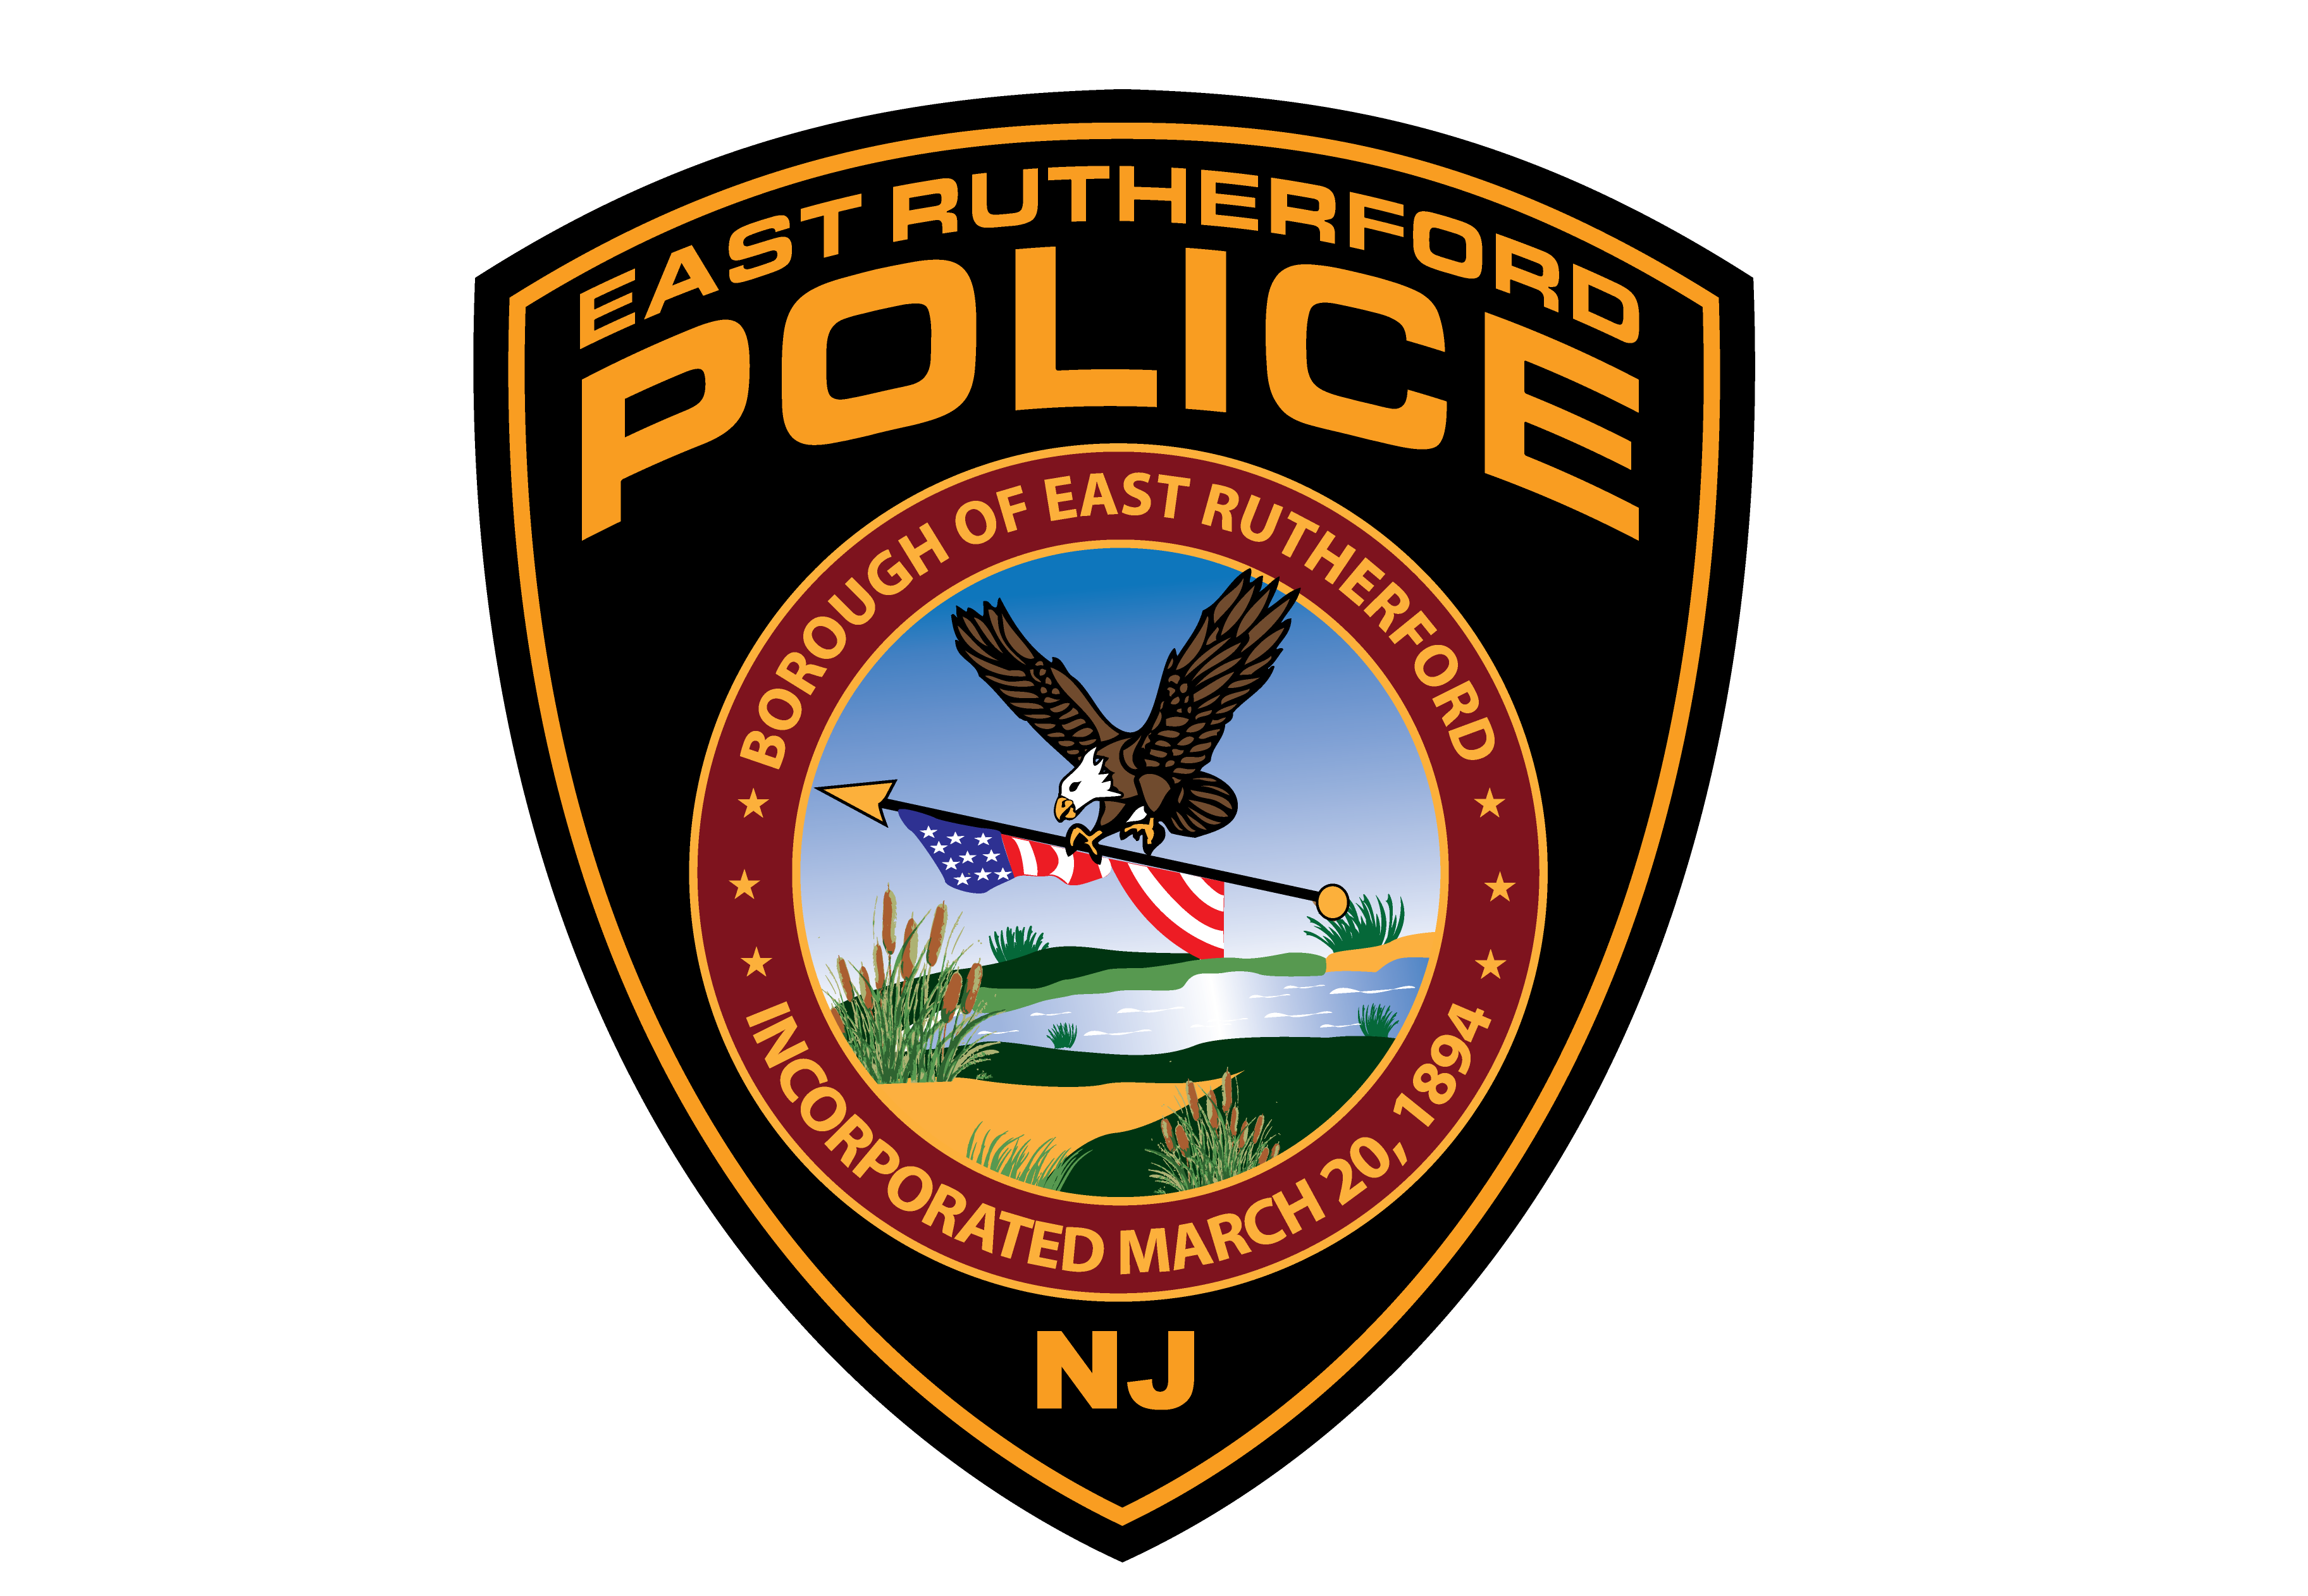 East Rutherford Police